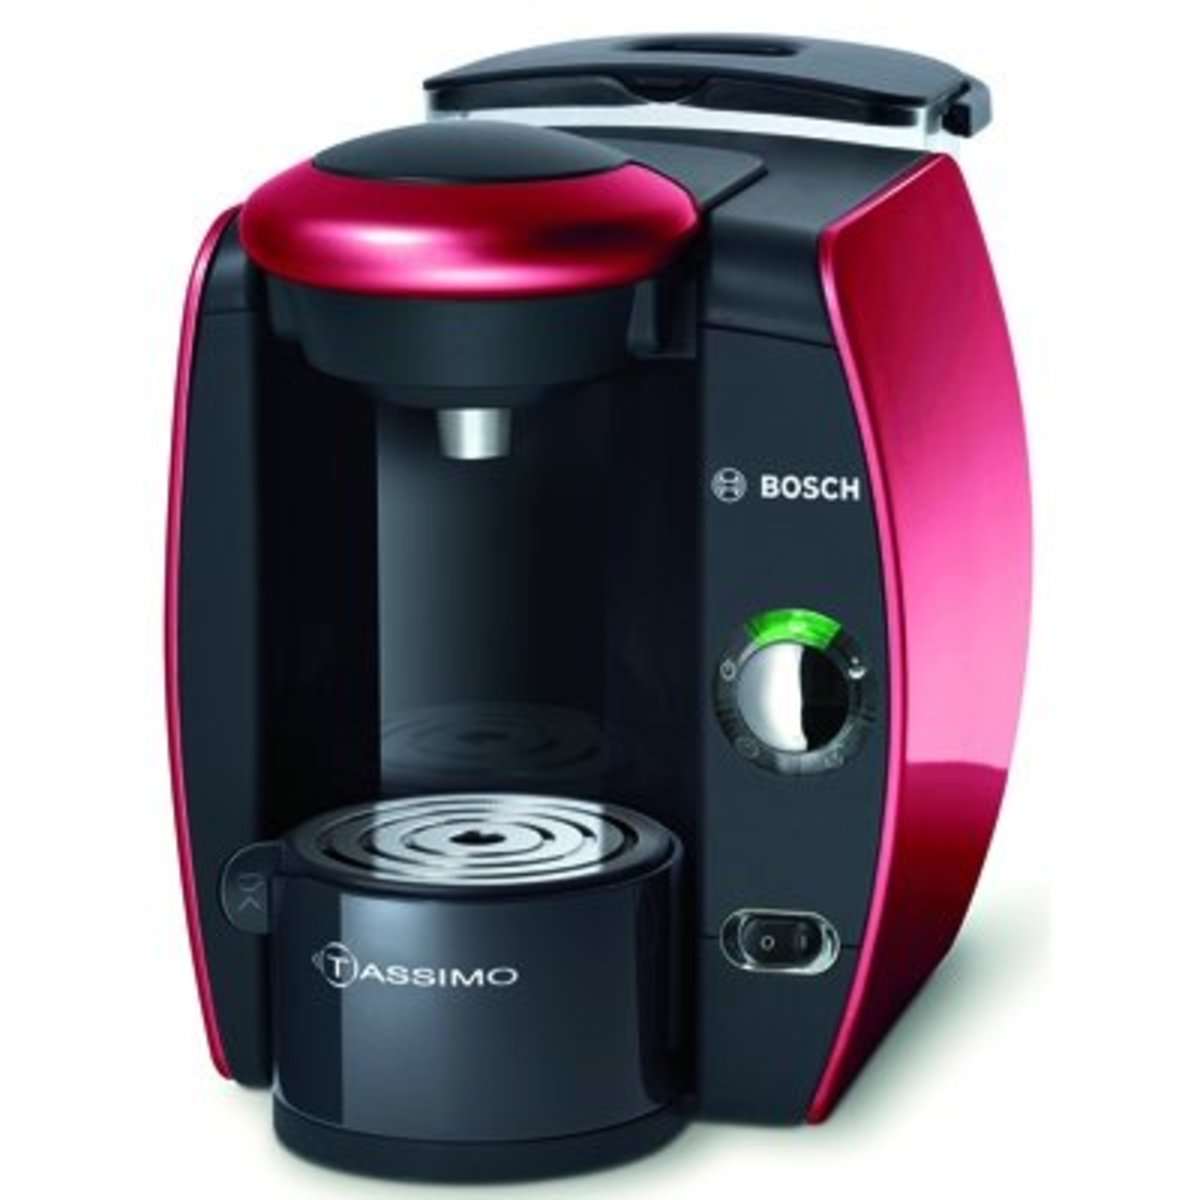 This article will break down my journey to find a great coffee maker and explain why I think the Tassimo is a great choice.